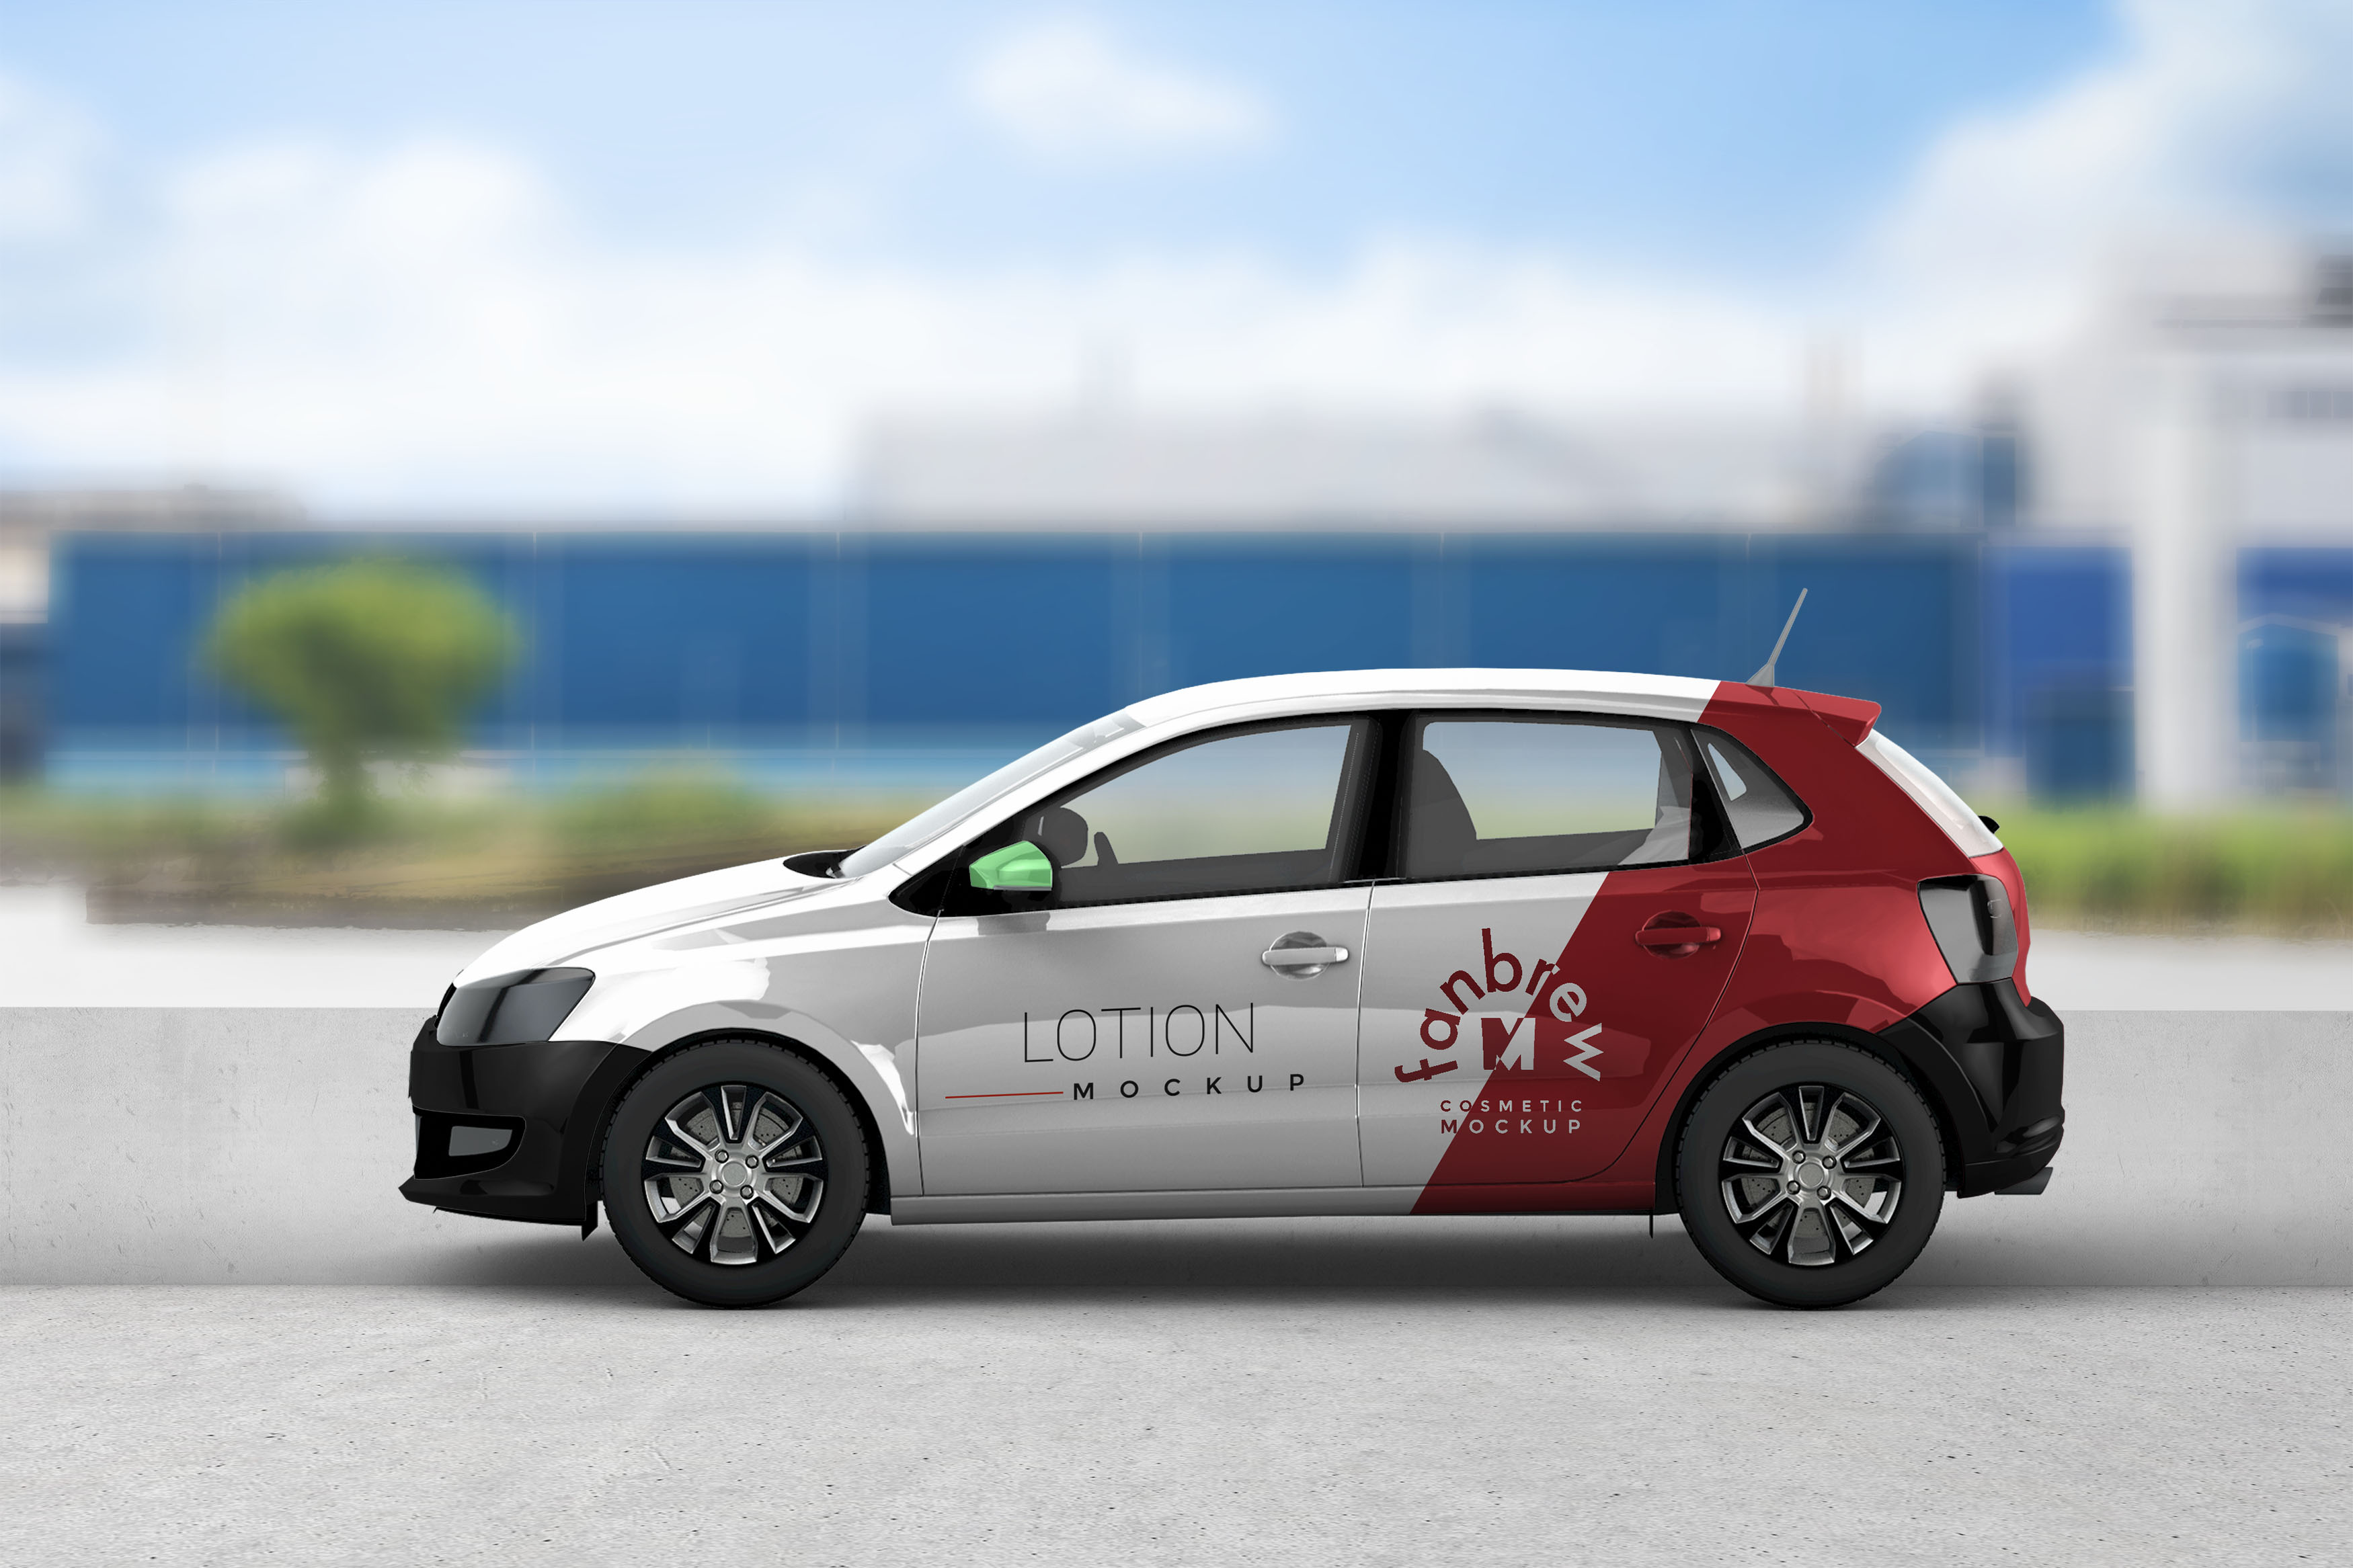 New Indica Car Wrap Mockup